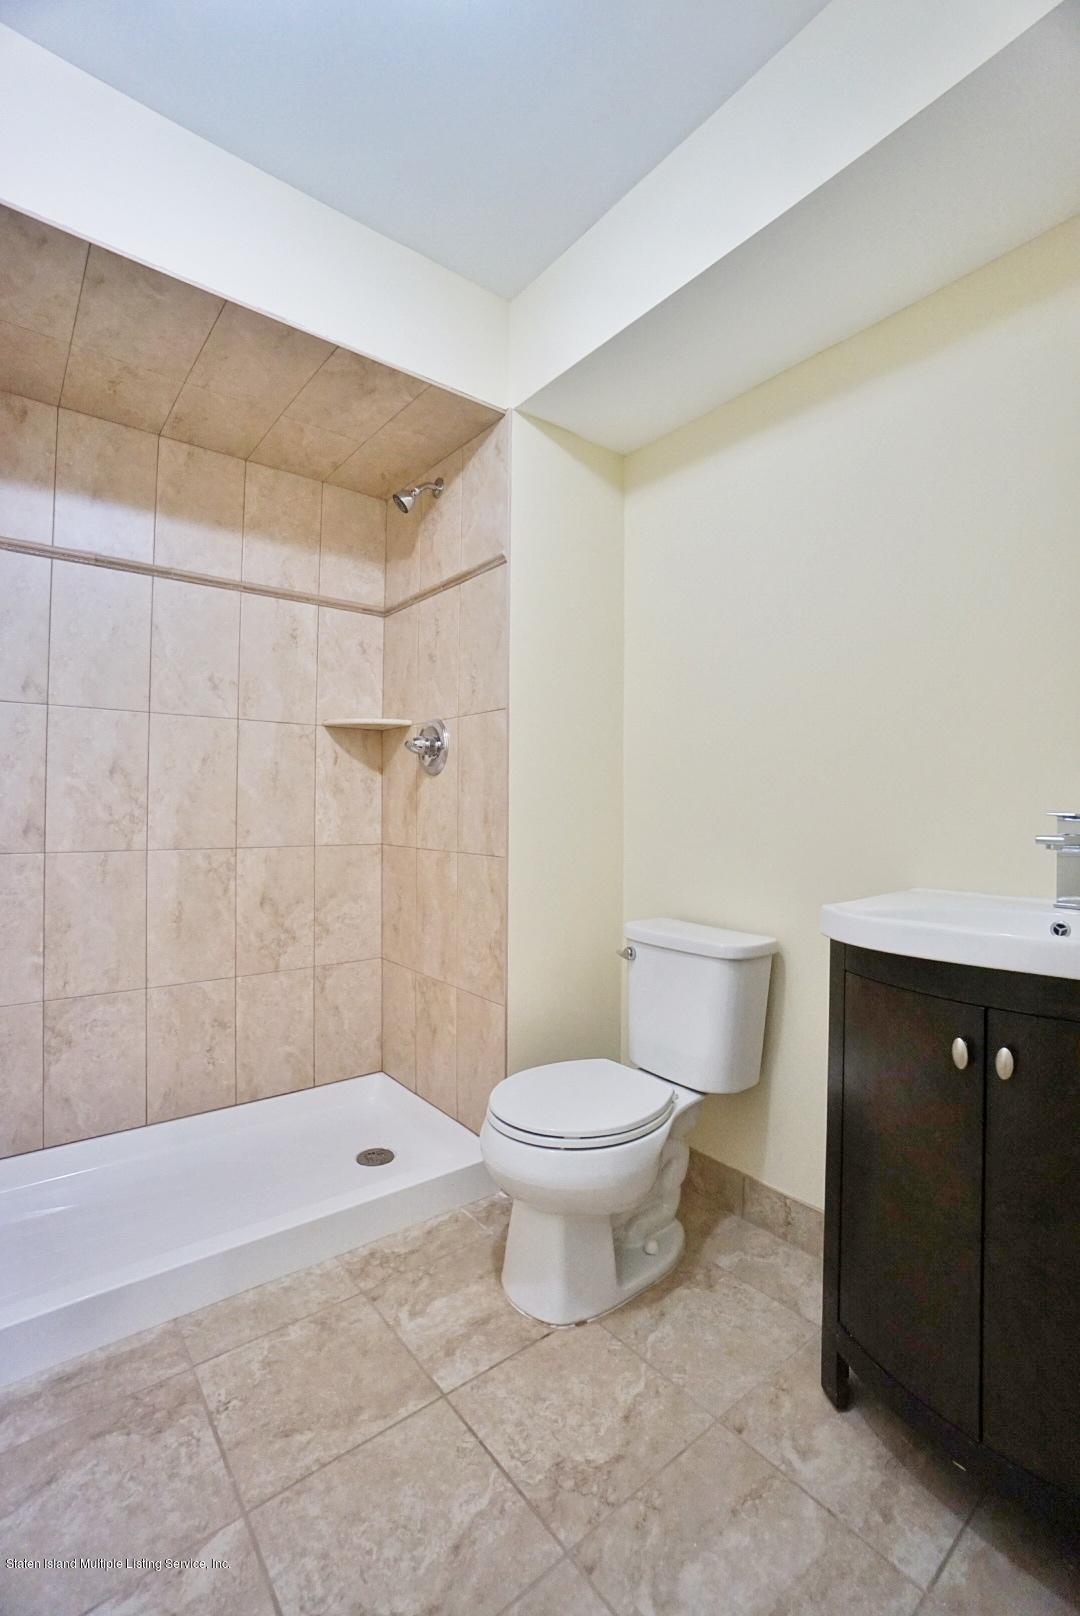 Single Family - Attached 34 Bamberger Lane  Staten Island, NY 10312, MLS-1135521-22